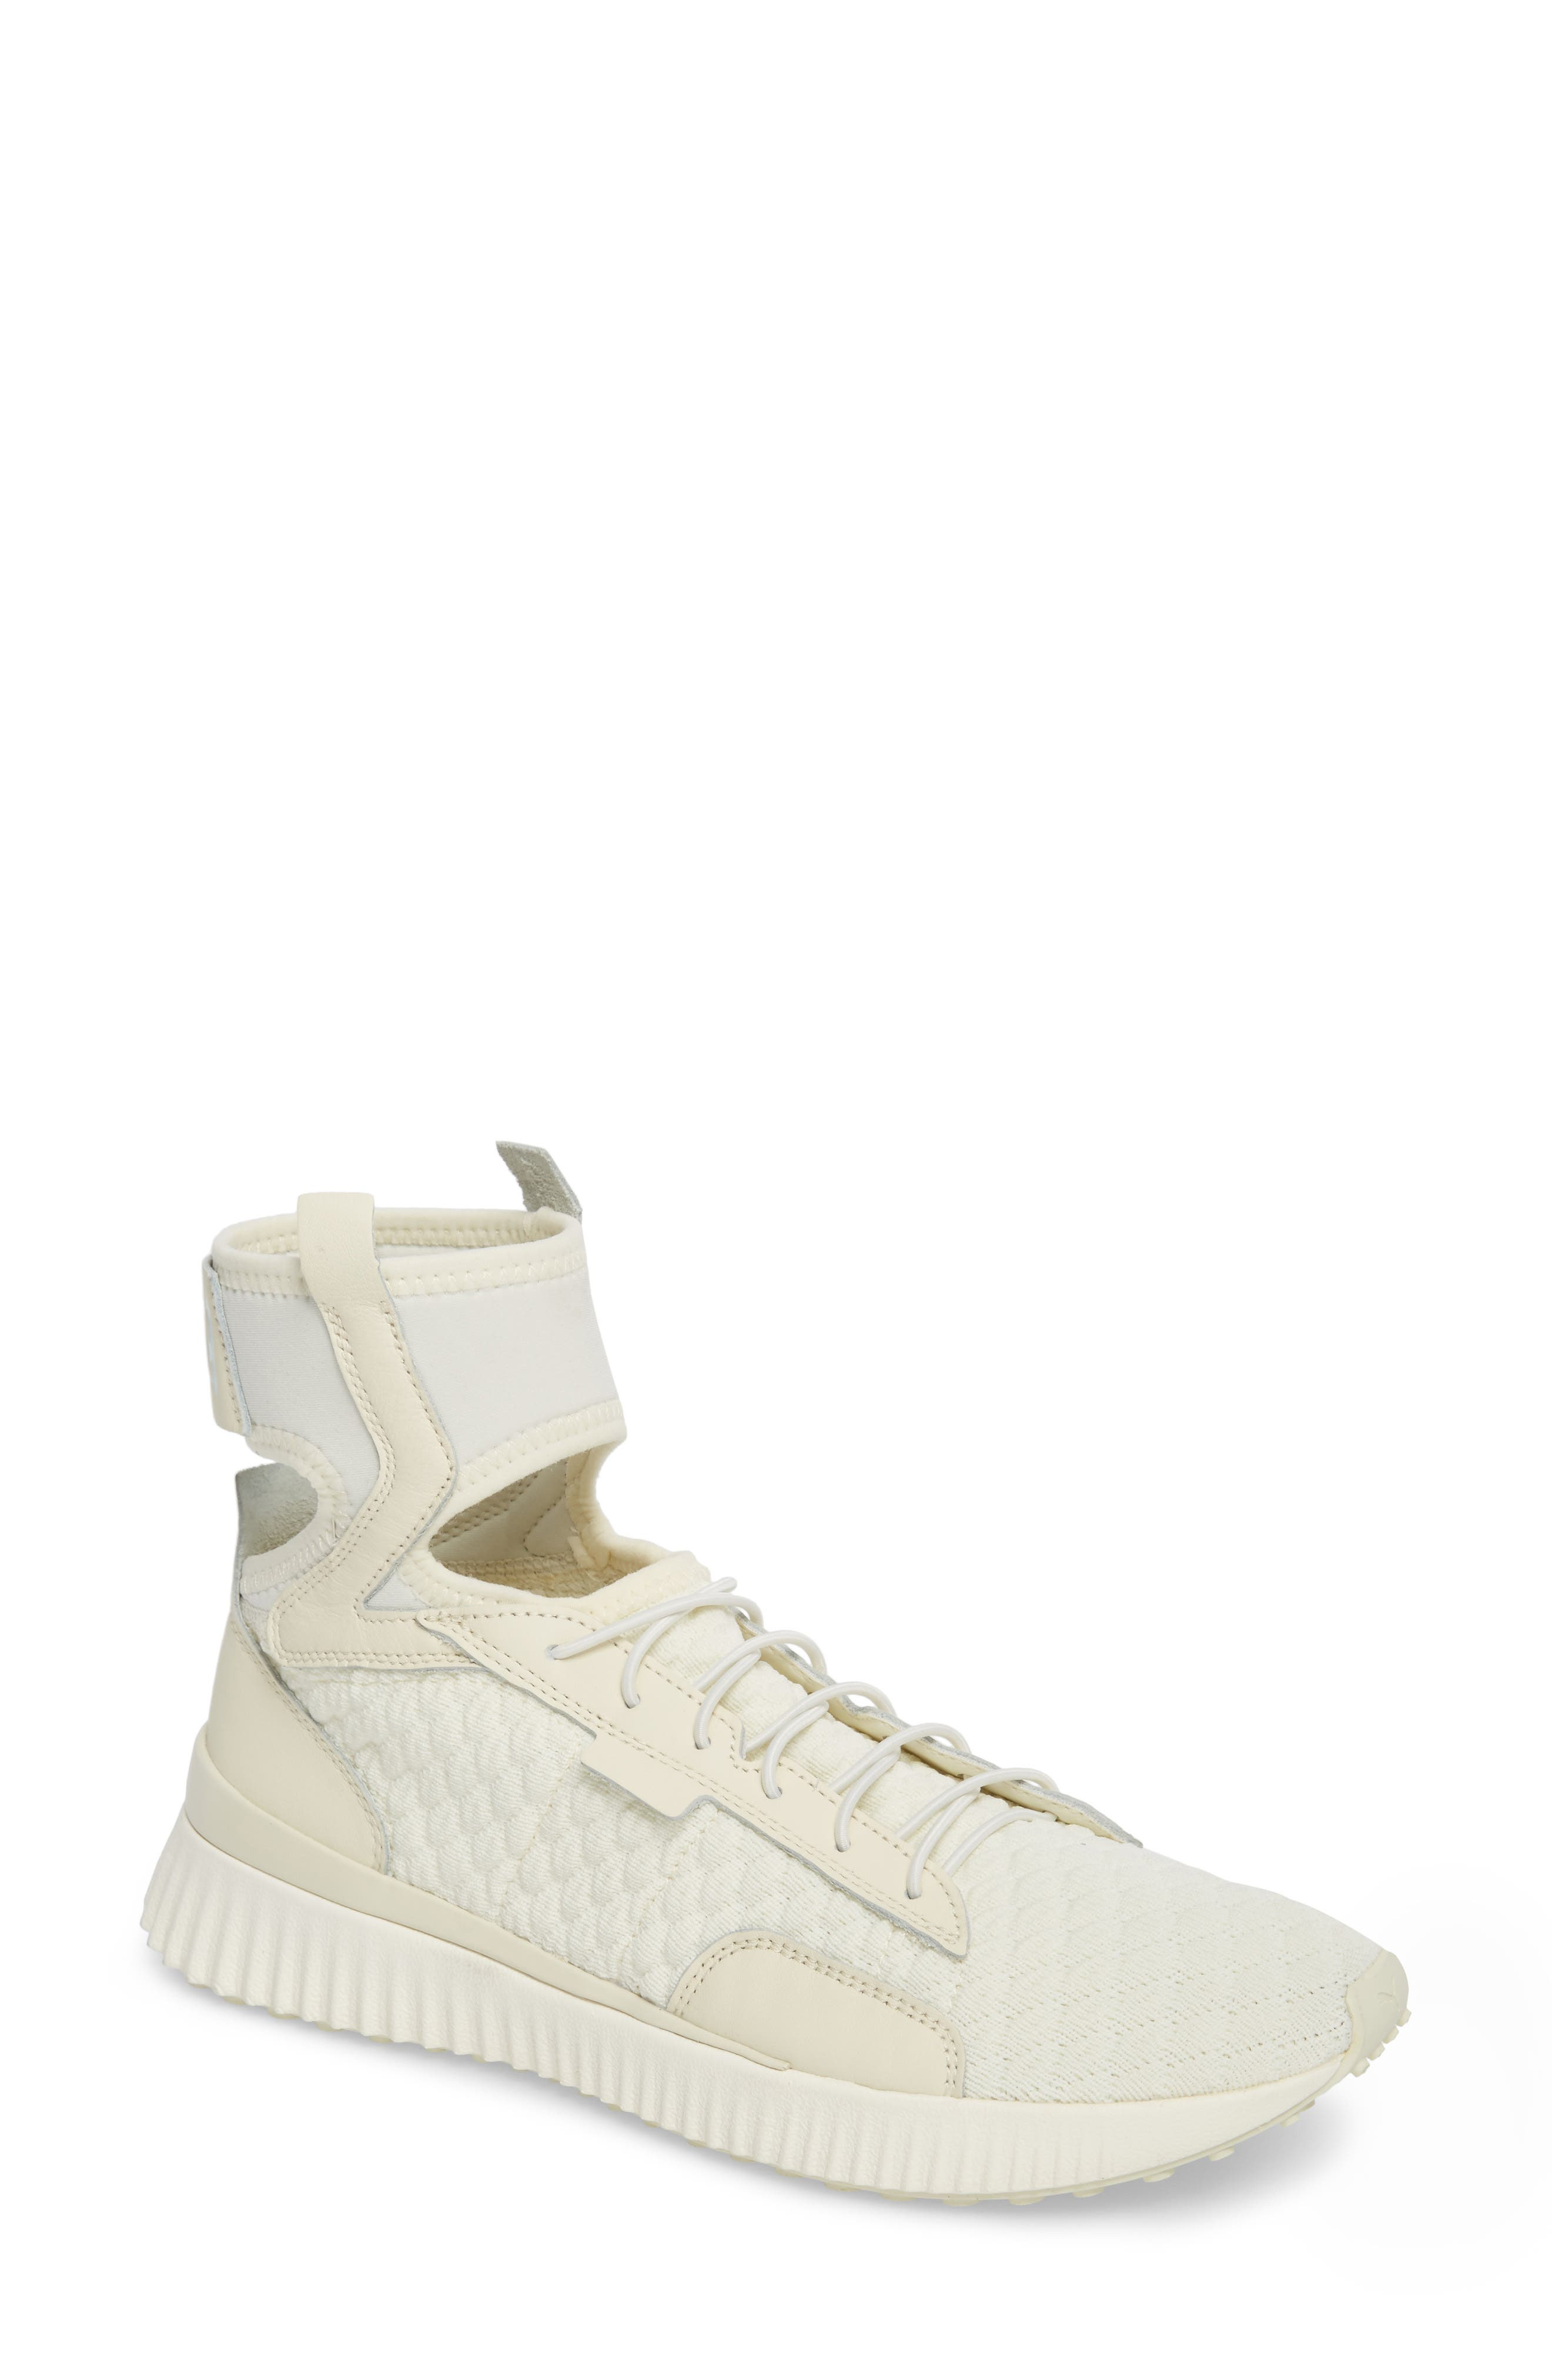 FENTY PUMA by Rihanna High Top Sneaker,                         Main,                         color, Vanilla Ice/ Sterling Blue